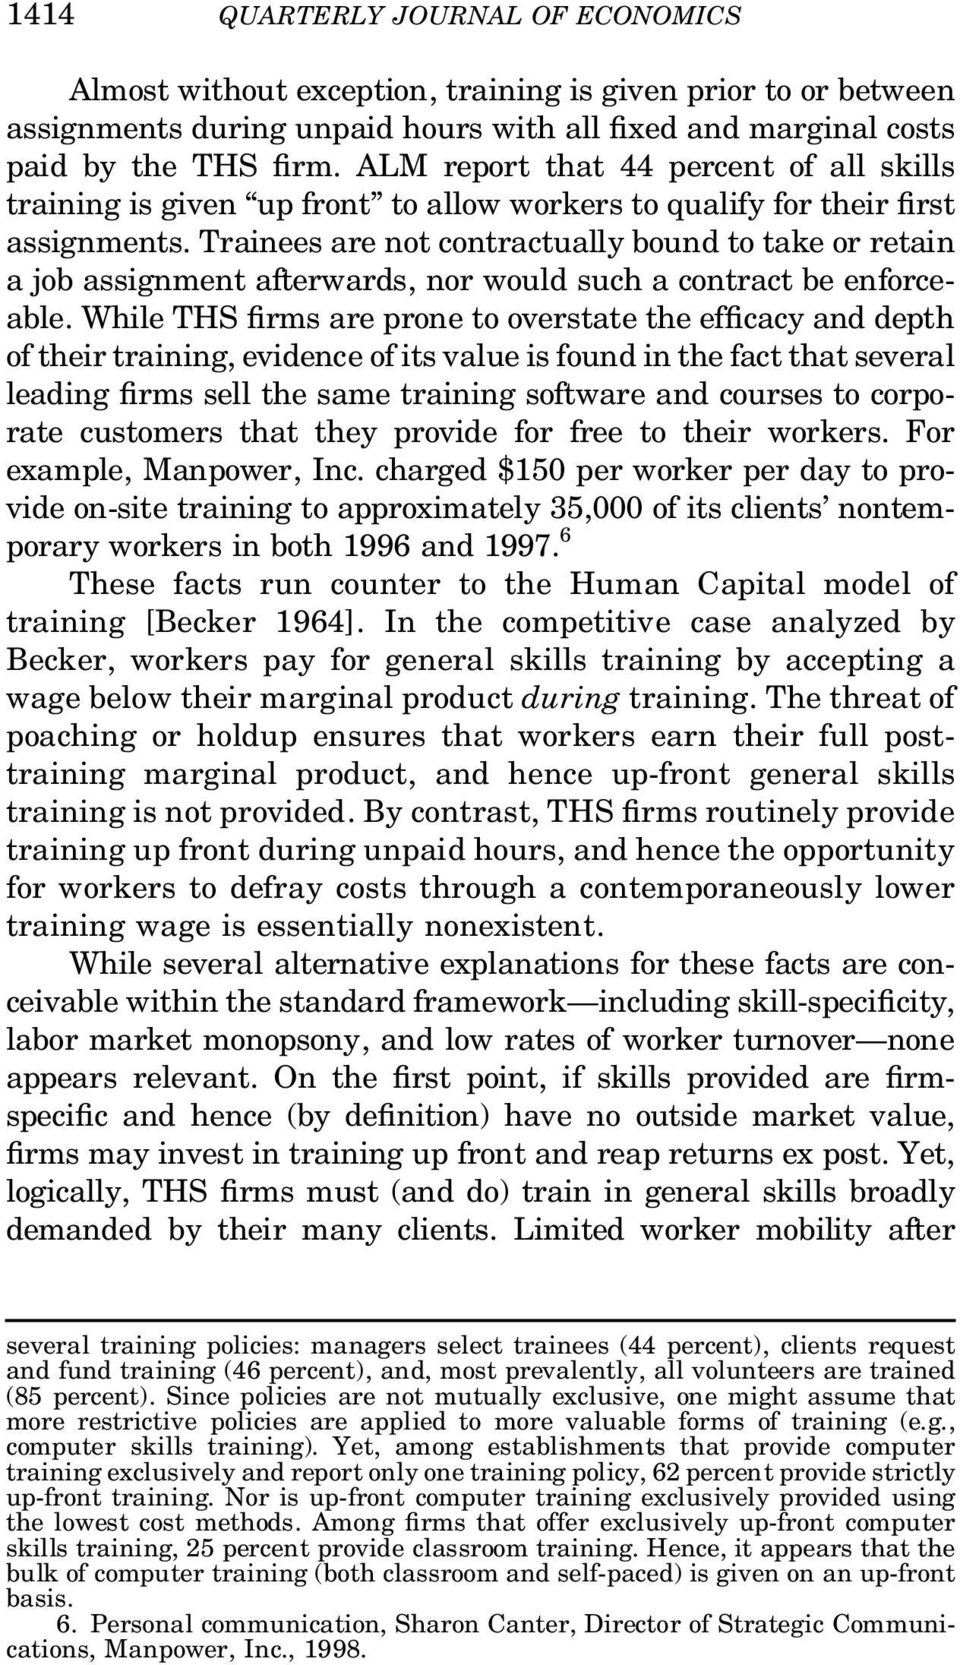 Trainees are not contractually bound to take or retain a job assignment afterwards, nor would such a contract be enforceable.